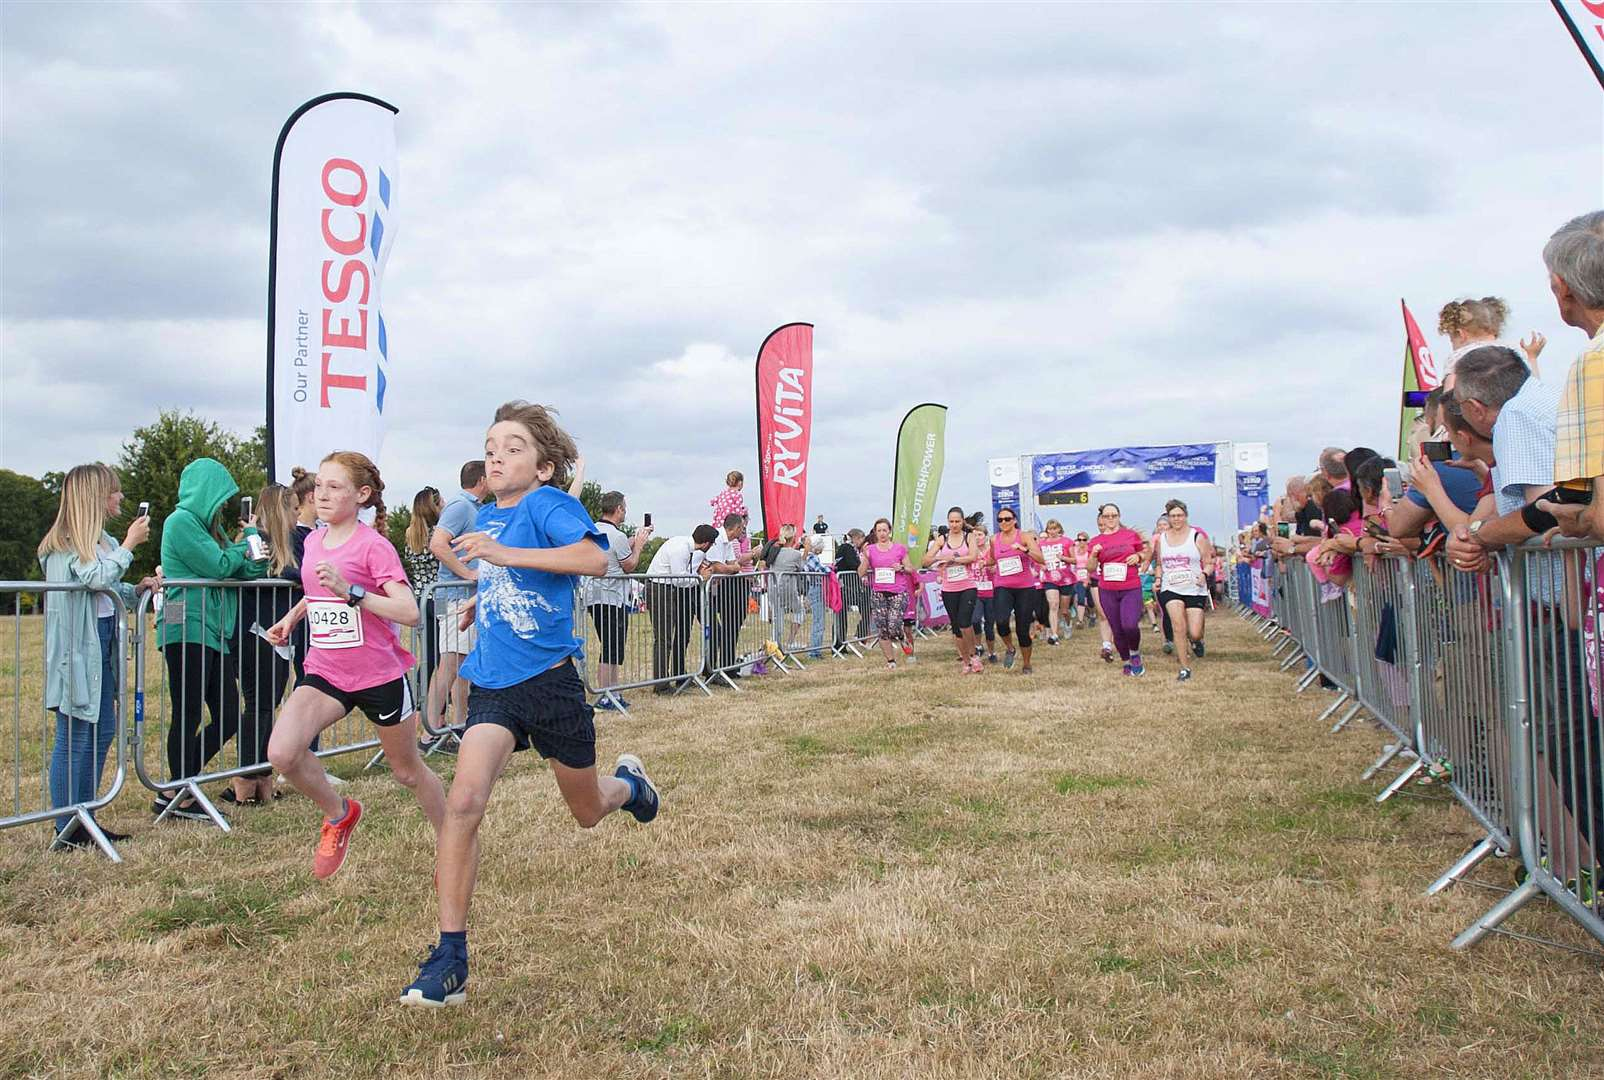 Action from the Race for Life in 2018